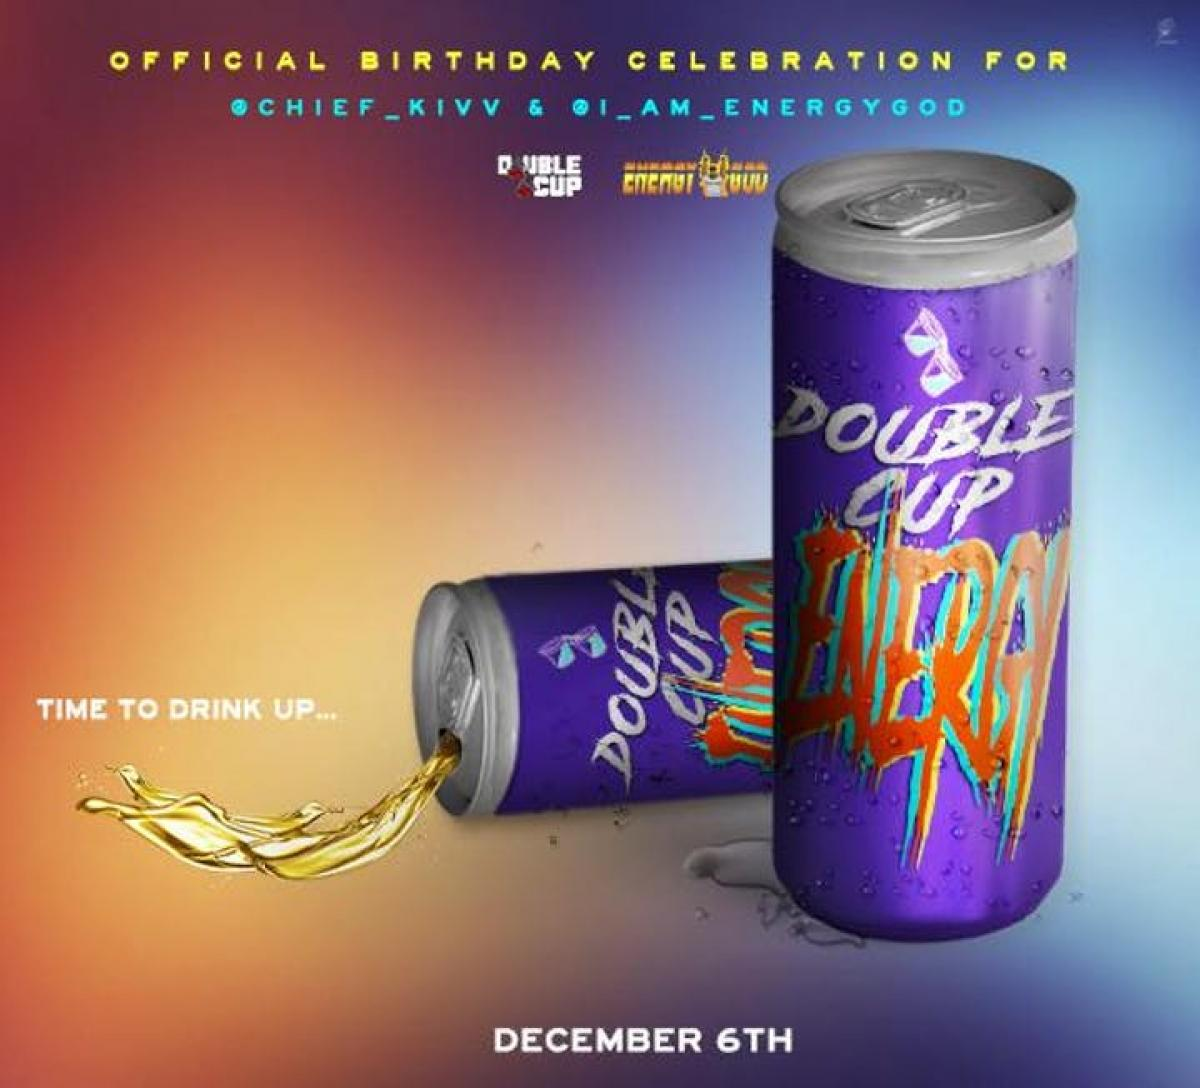 Double Cup Energy flyer or graphic.